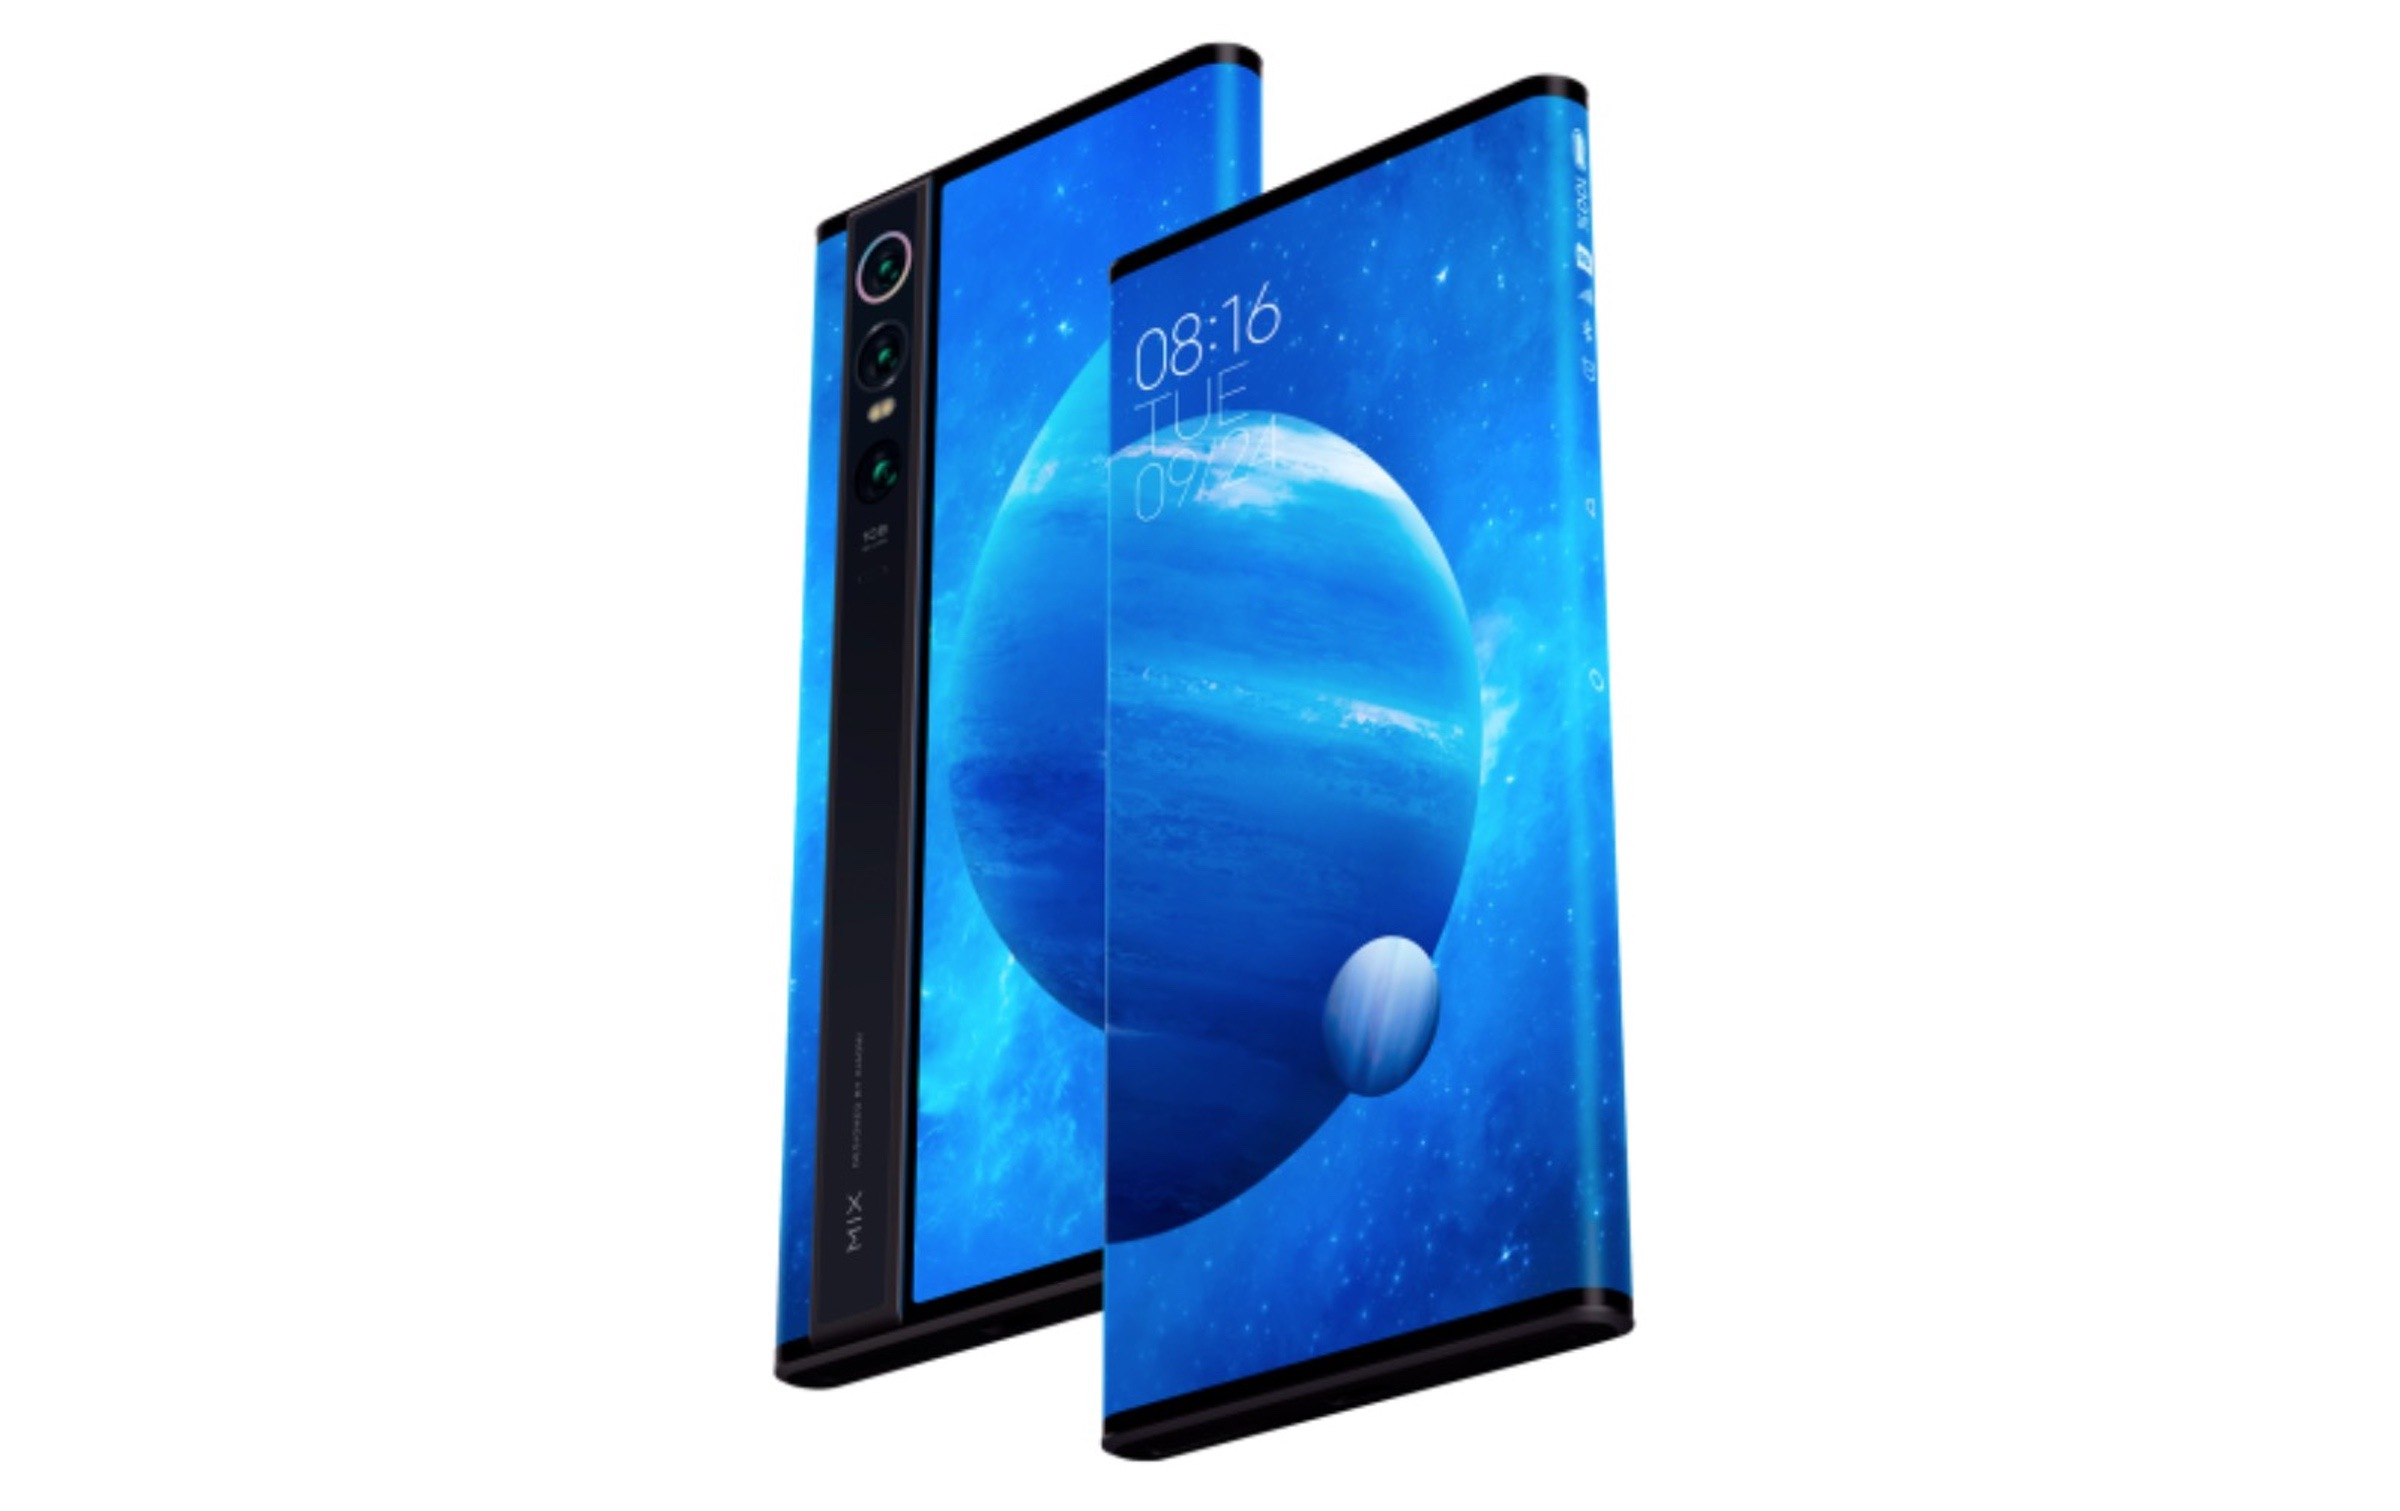 Xiaomi Mi Mix Alpha: Das surreale Surround-Display-Smartphone